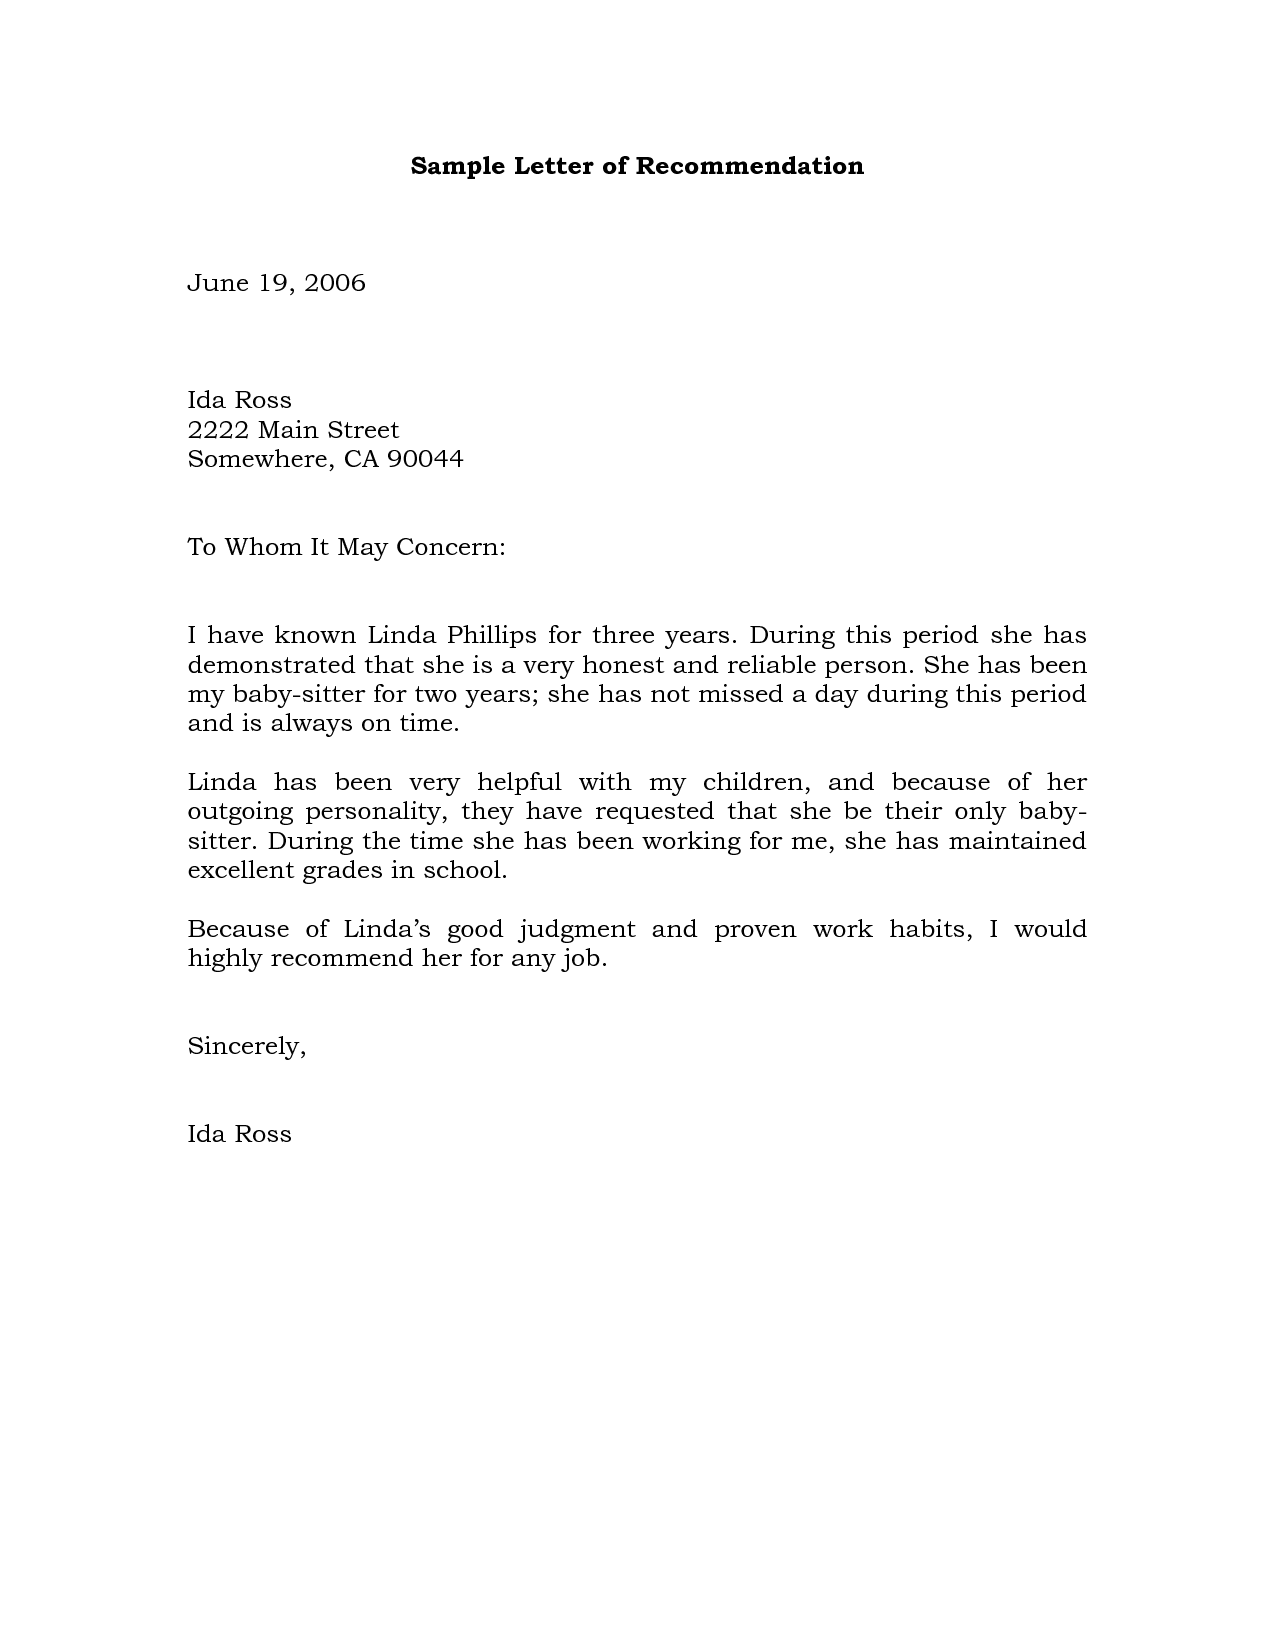 Sample Recommendation Letter Example Regarding Personal Reference Letter For A Job